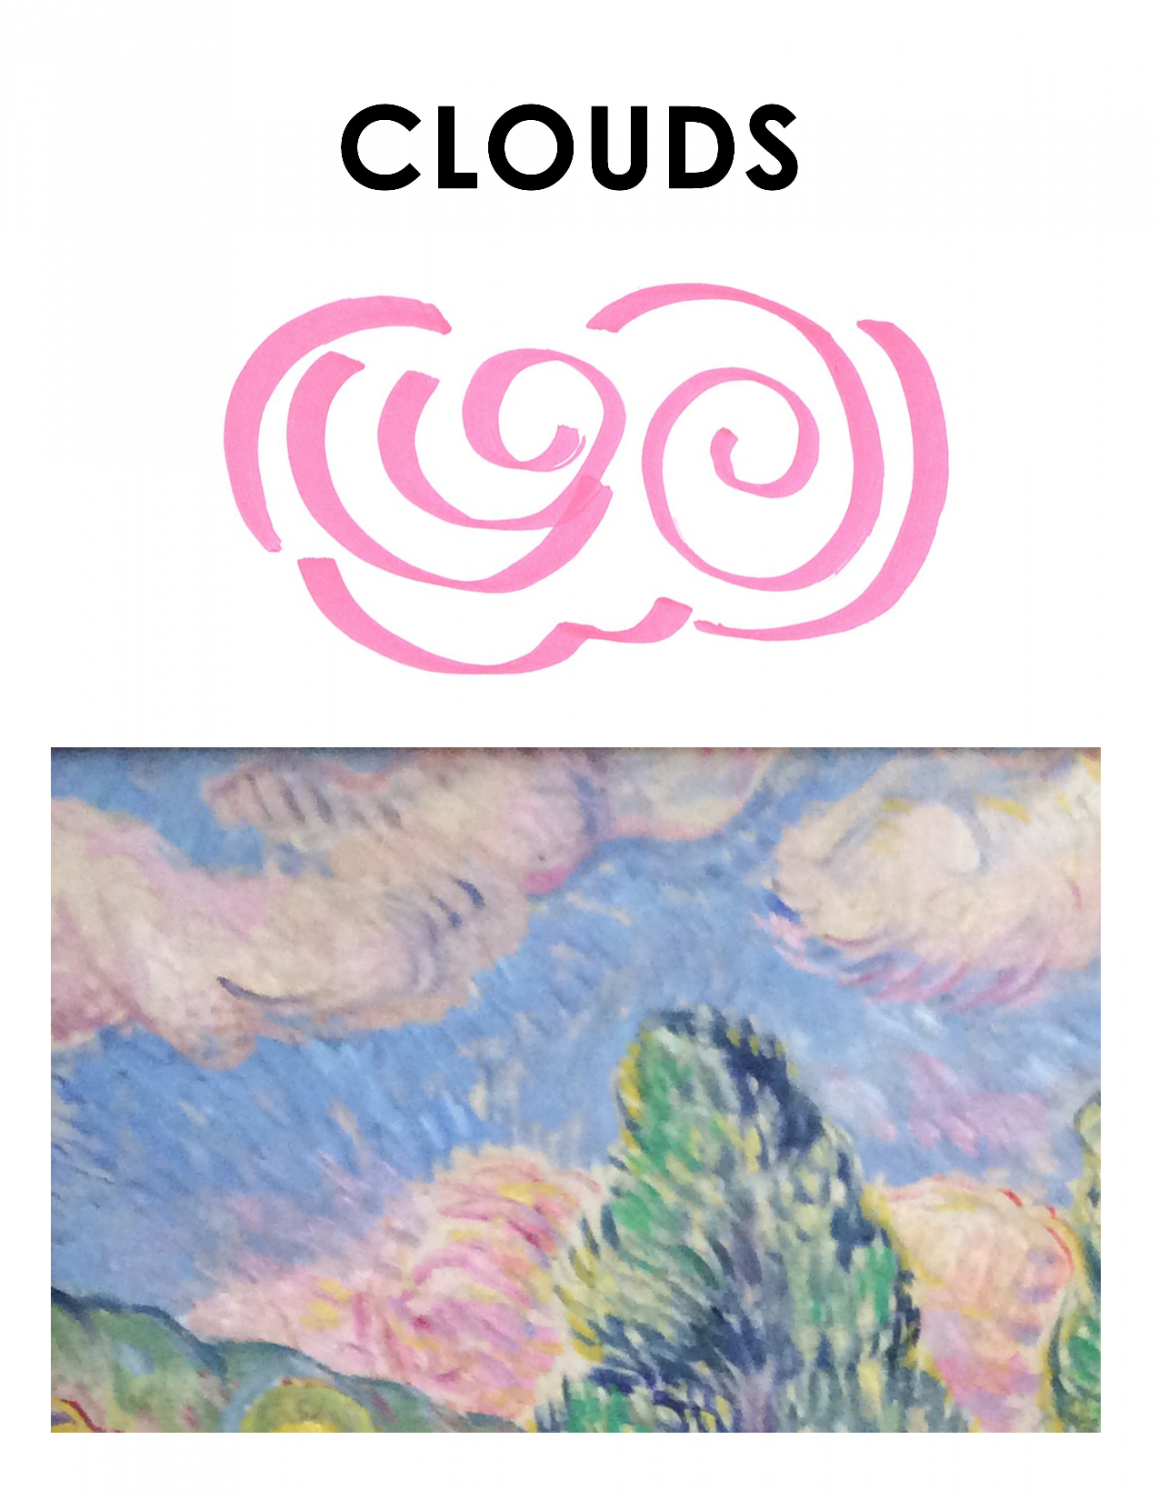 """Brightly colored landscape is on the bottom of this image. The top says """"Clouds"""" and depicts pink curly lines that make up a cloud-like shape."""